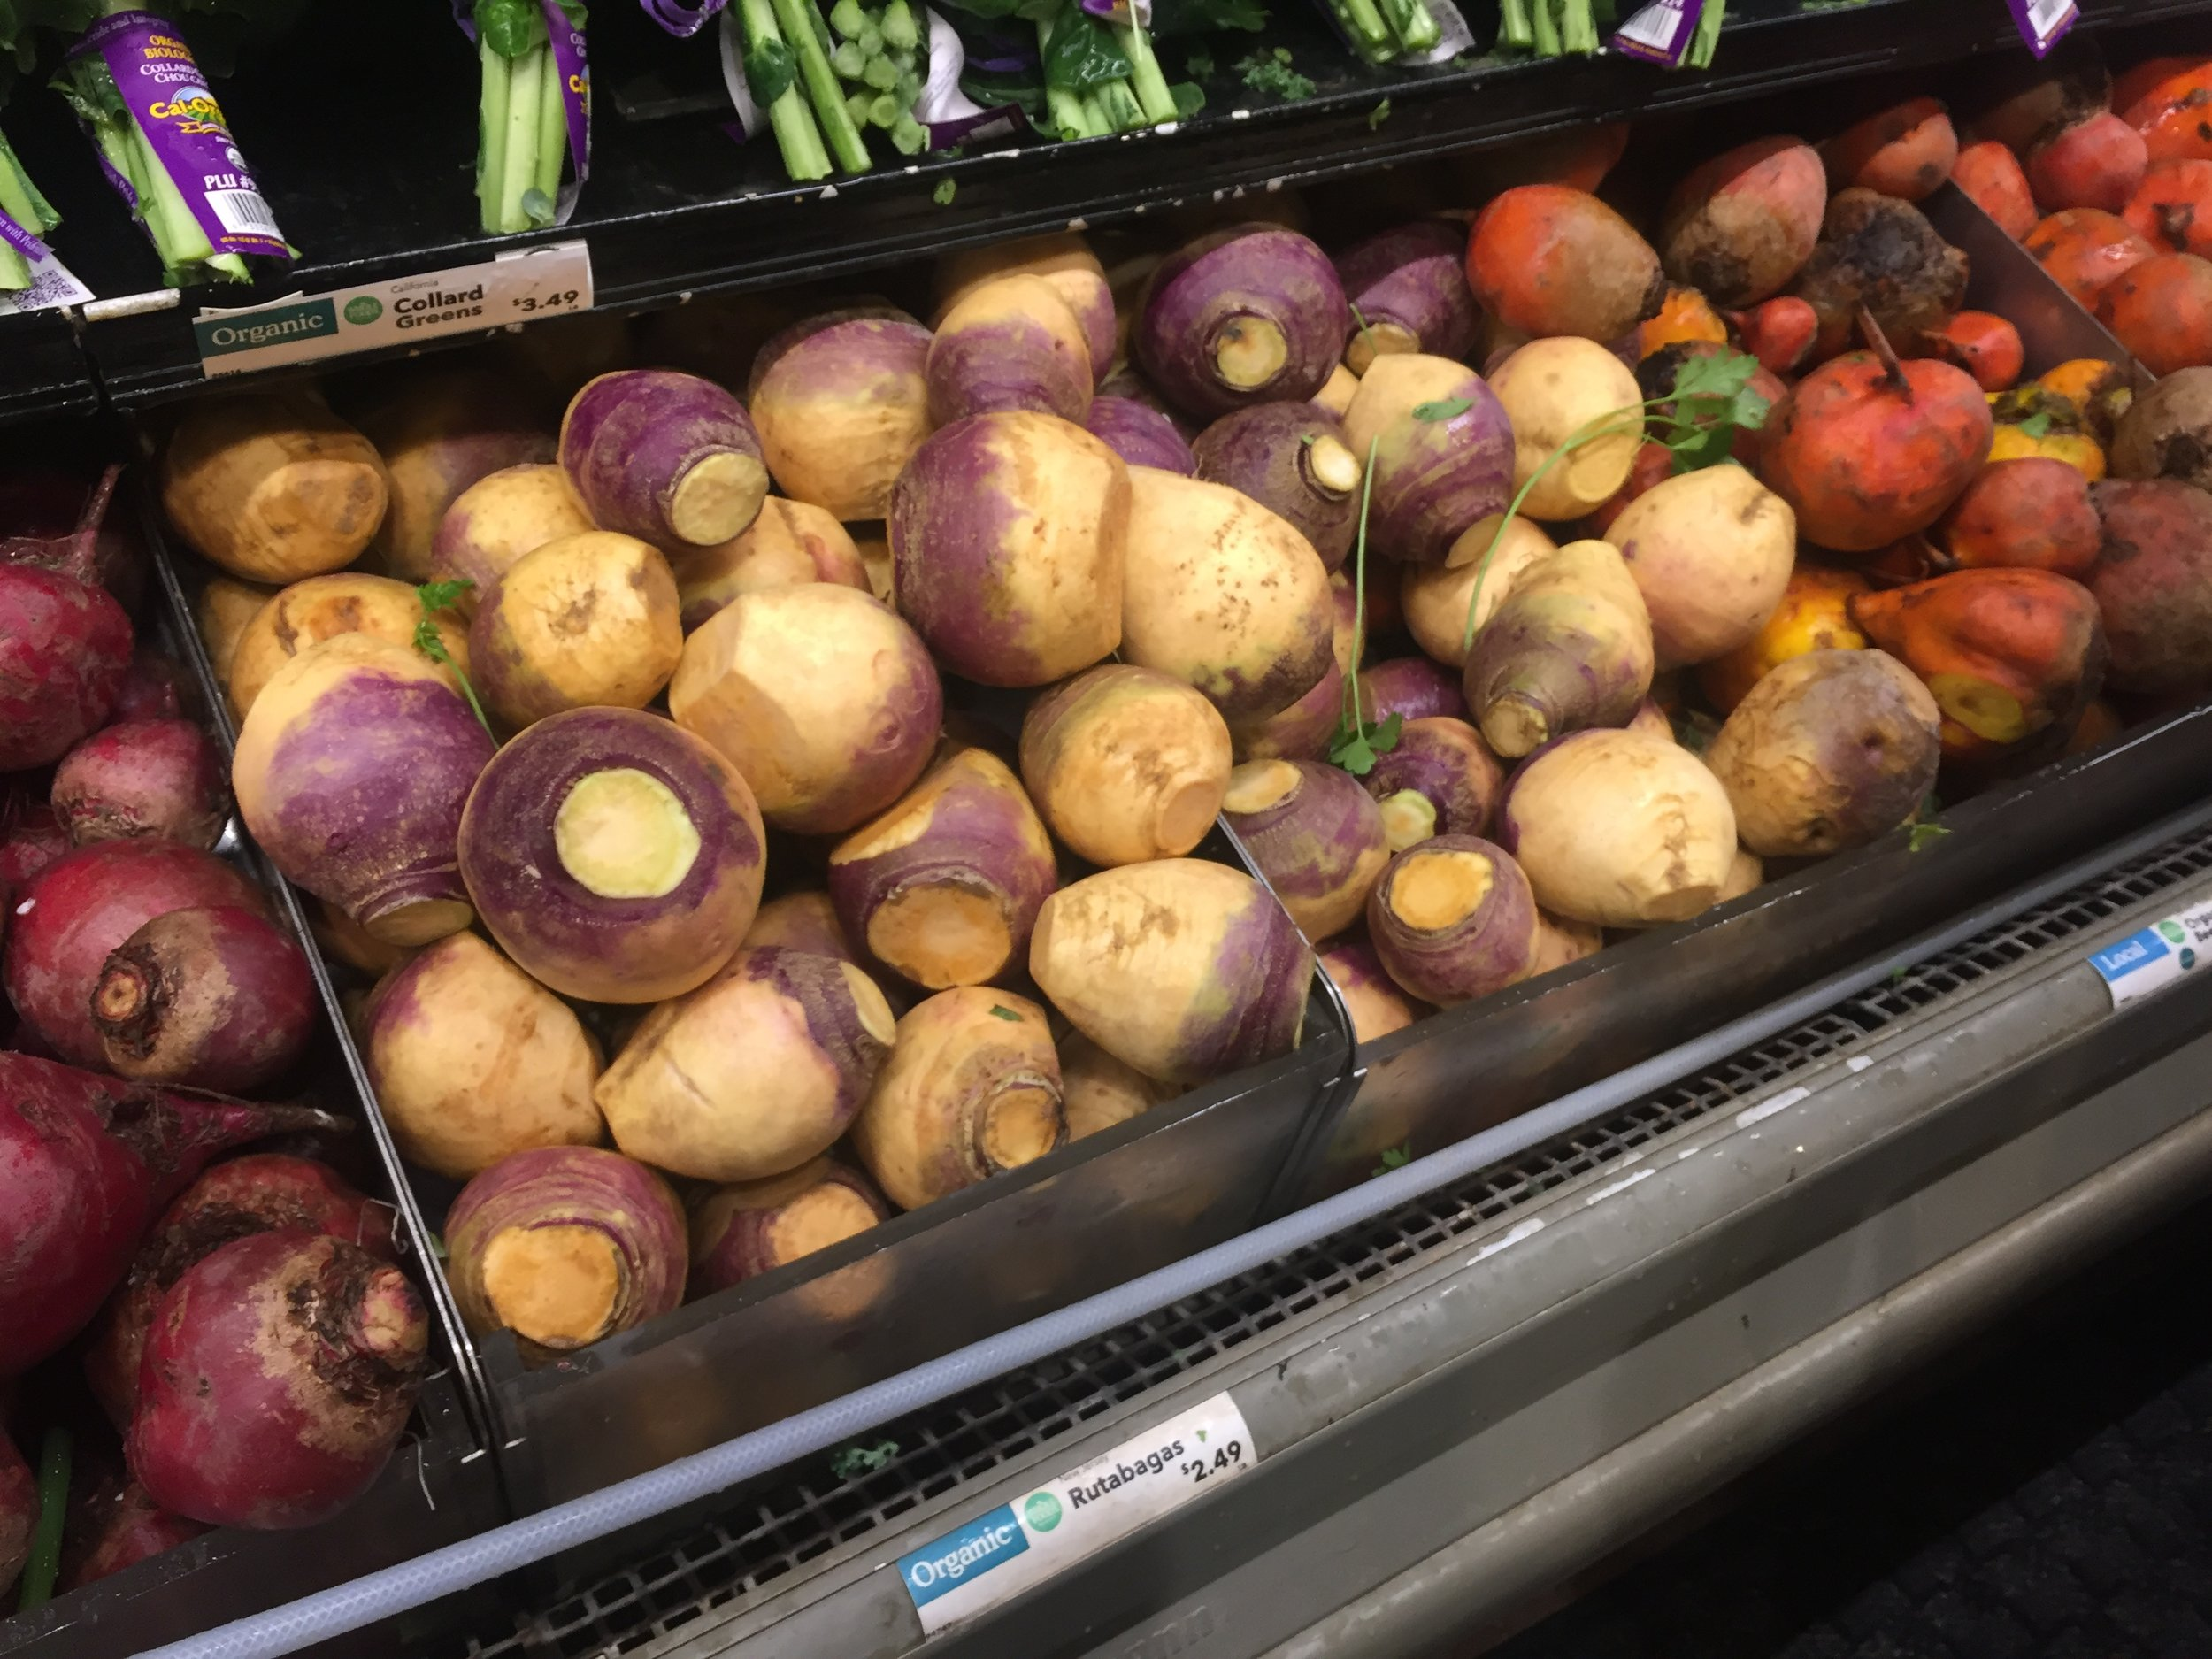 Rutabaga can be found in the root vegetable section in the grocery store.